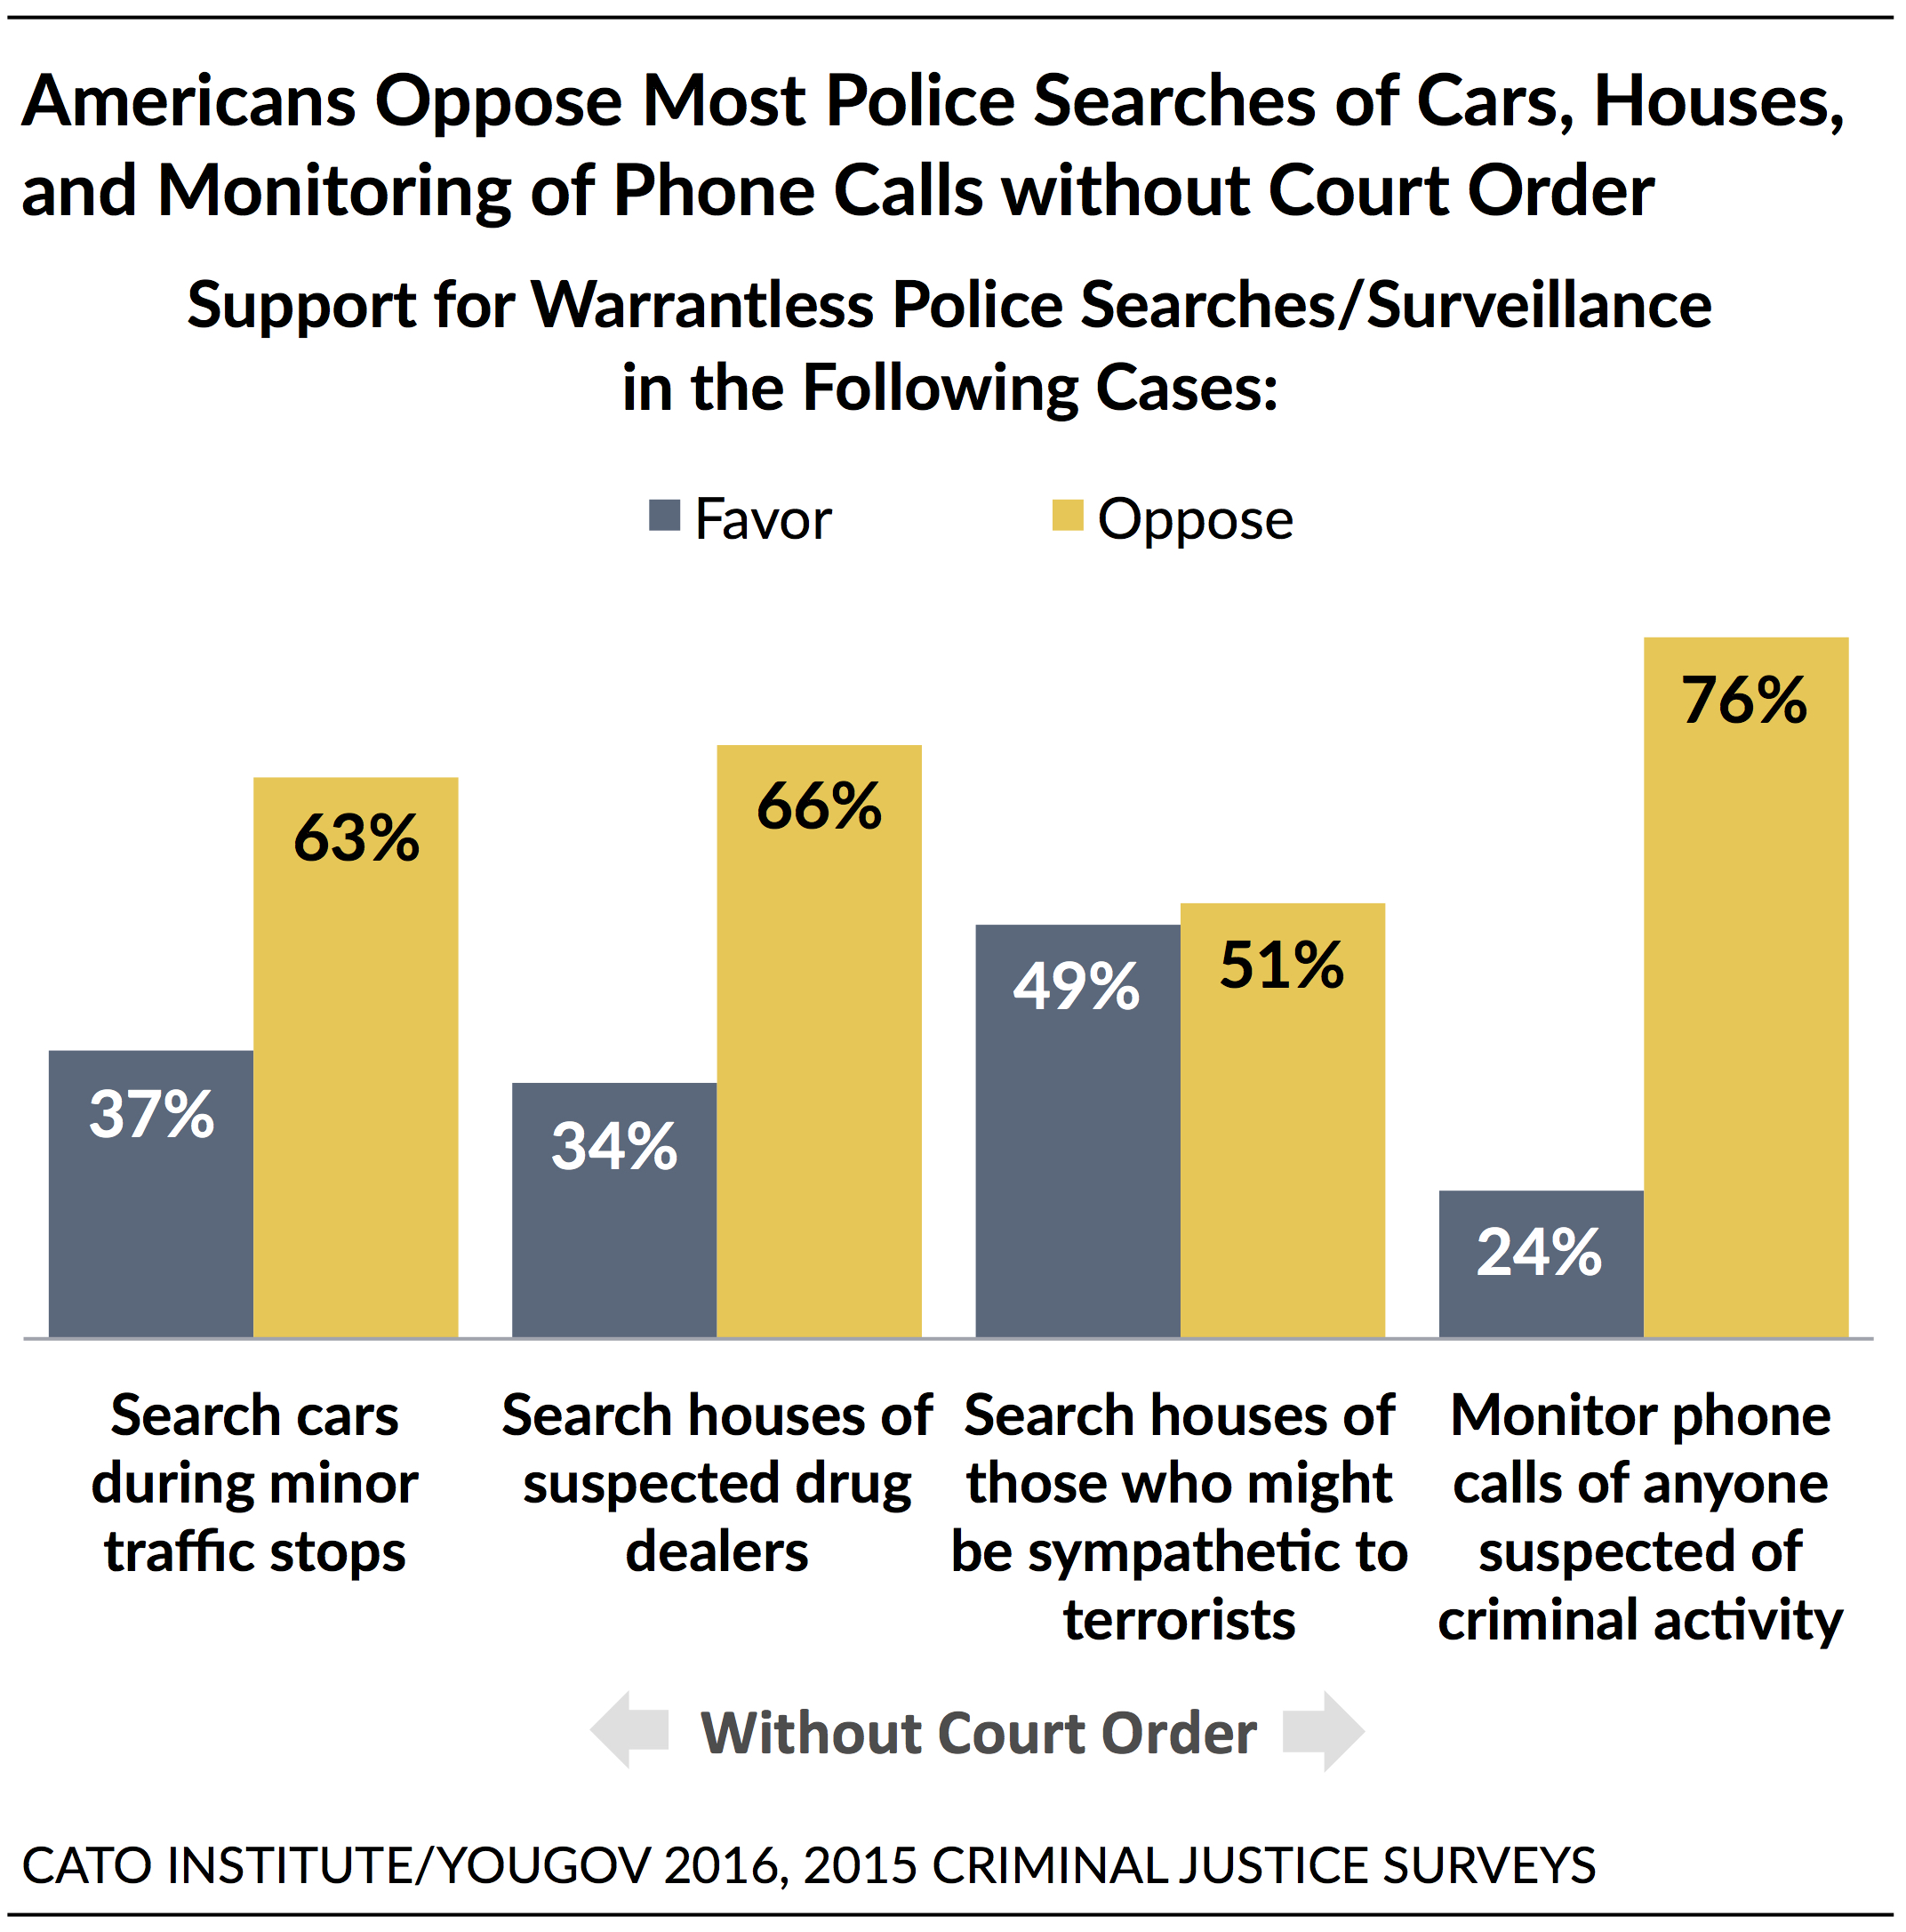 Policing in america understanding public attitudes toward the policing in america understanding public attitudes toward the police results from a national survey cato institute falaconquin